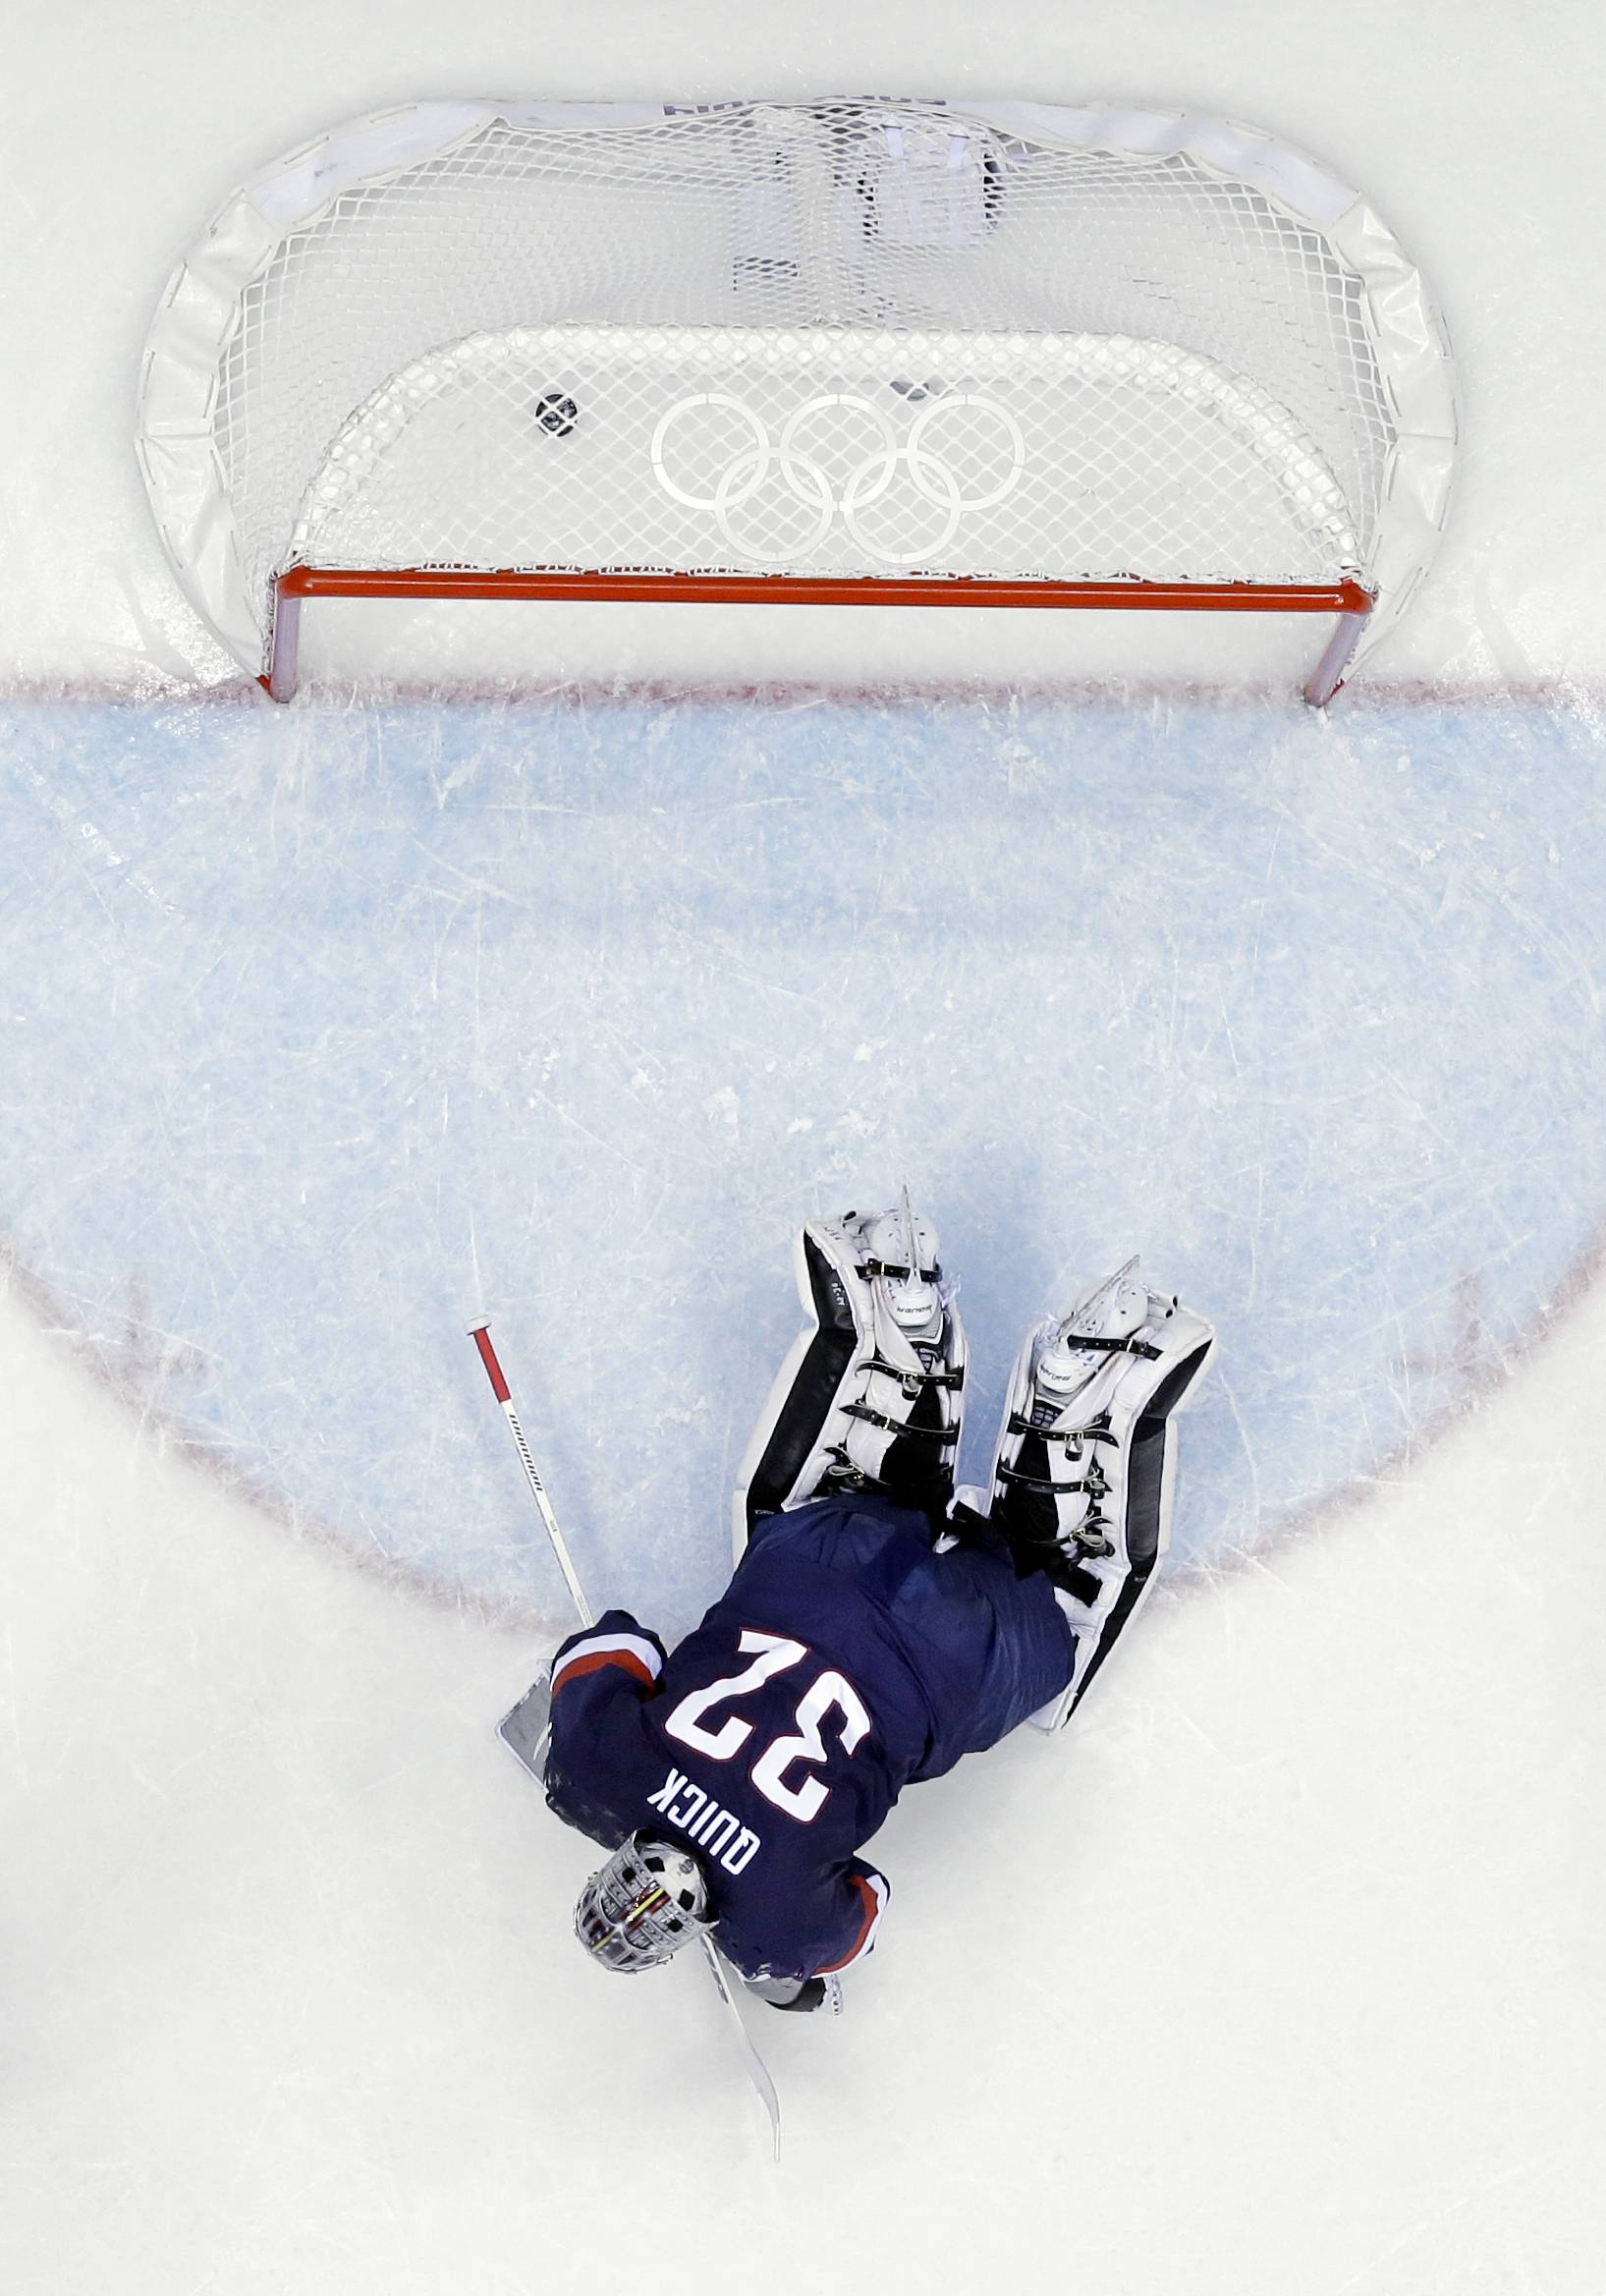 USA goaltender Jonathan Quick lays on the ice after giving up a goal during the third period of the men's bronze medal ice hockey game against Finland at the 2014 Winter Olympics, Saturday, Feb. 22, 2014, in Sochi, Russia.